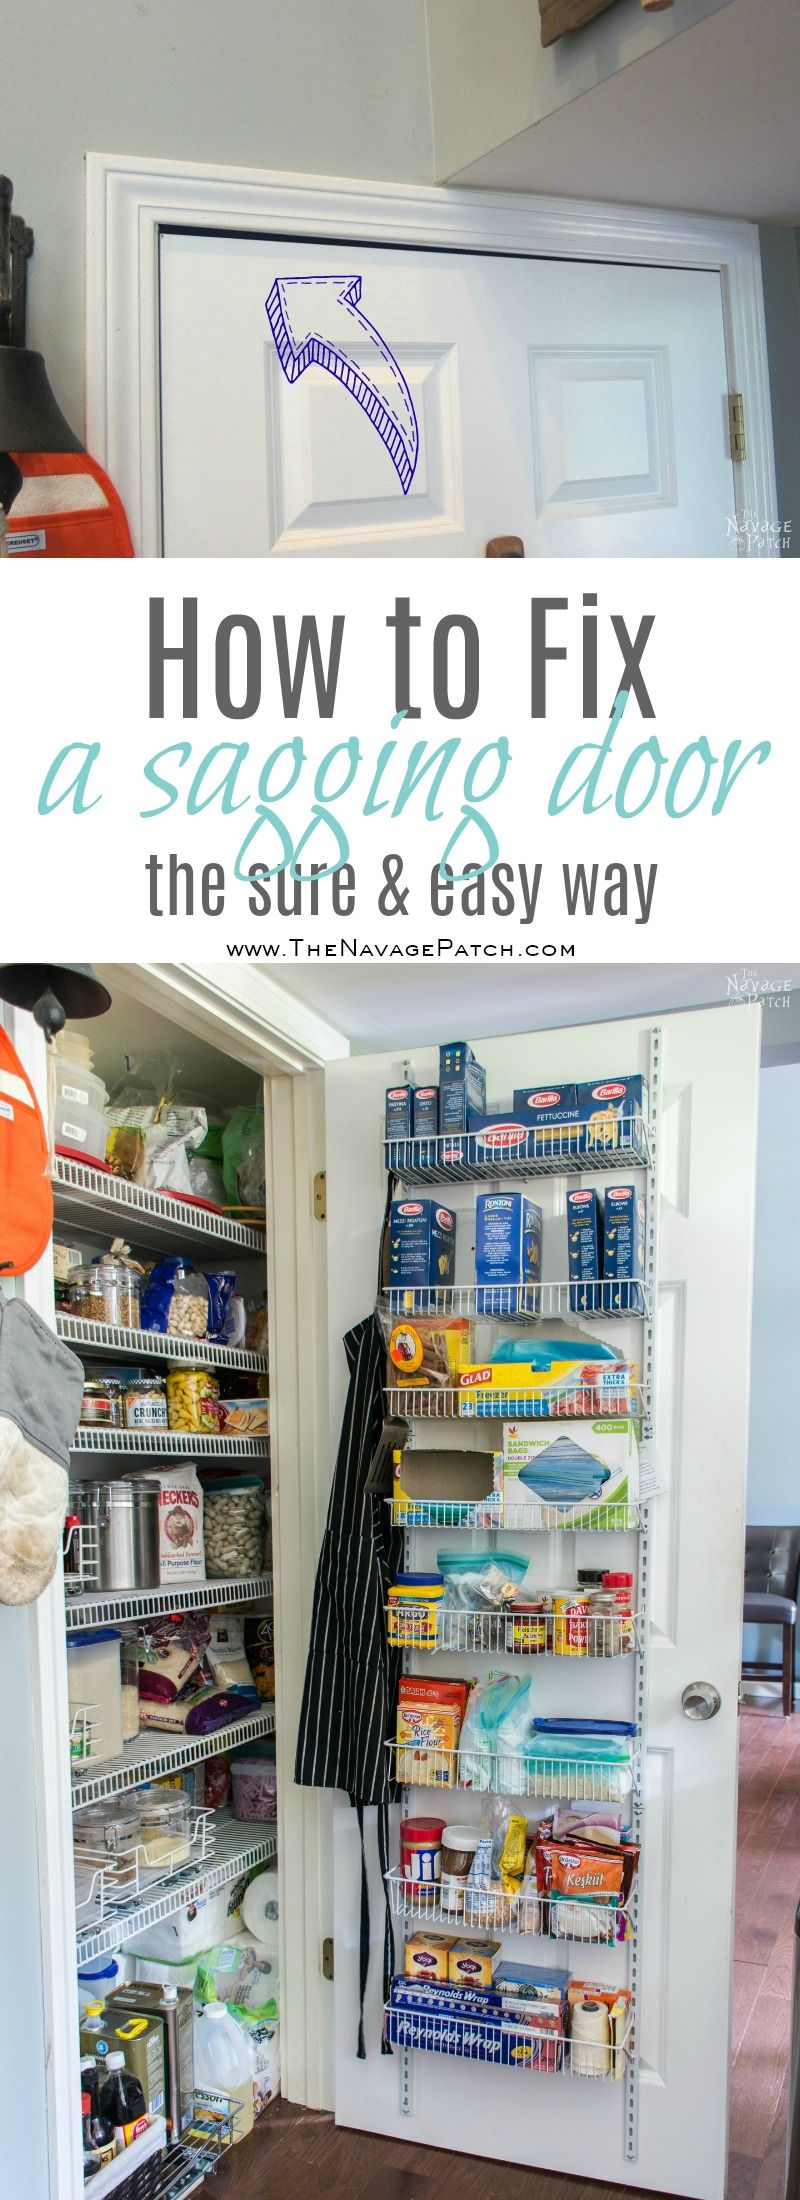 Pantry Makeover | DIY pantry organization ideas | How to fix a sagging door | How to install a door organizer | How to repair a crooked door | How to fix a sticking door | DIY pantry door fix | Pantry cleaning | How to install wire pantry shelves the easy way | How to make the most of a small pantry | Small pantry organization ideas | Before & After | TheNavagePatch.com